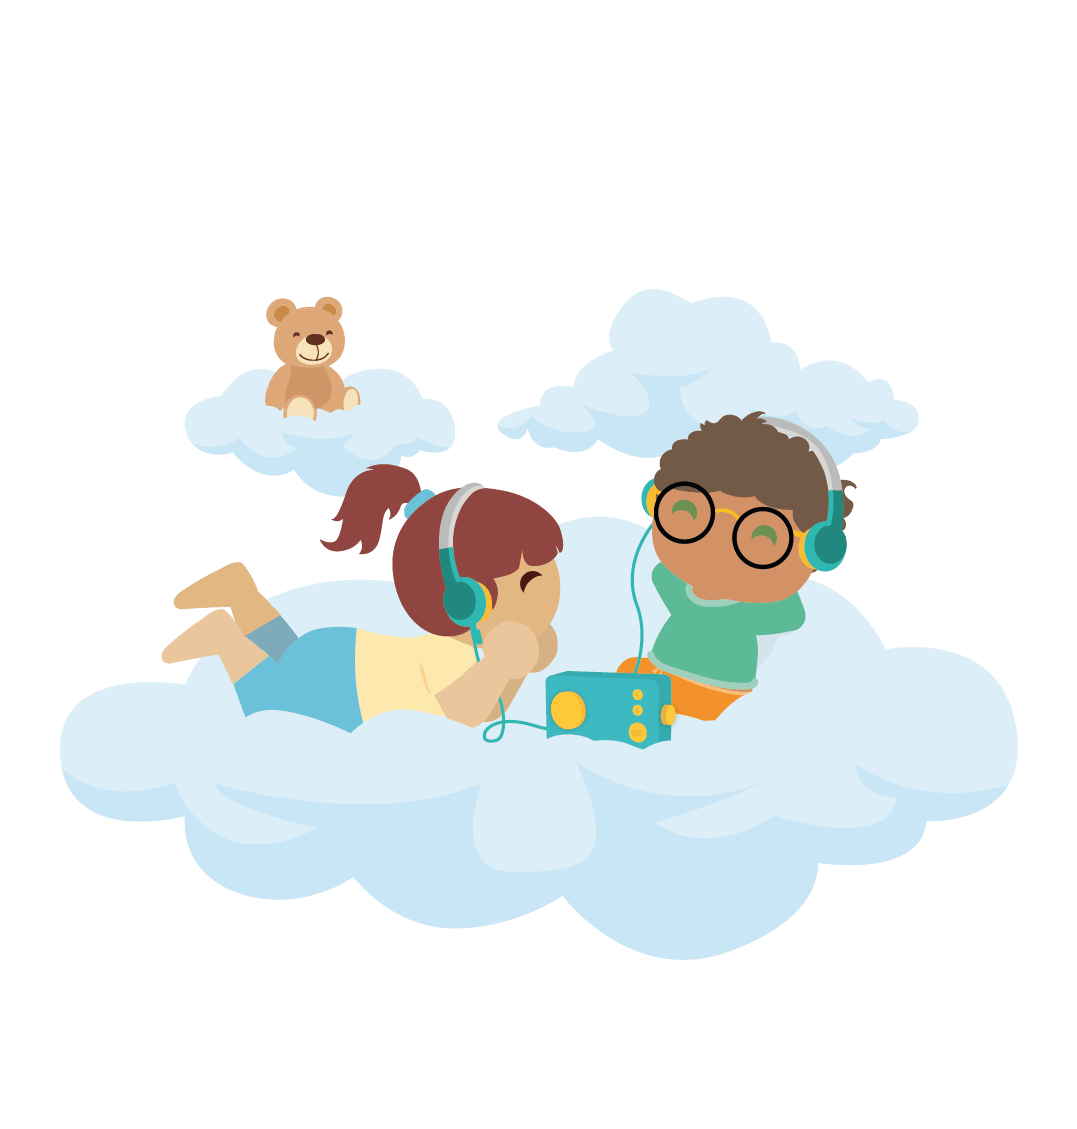 Octave is a great way to share fun audio story experiences on your Fabulous Storyteller with siblings, family and best friends!